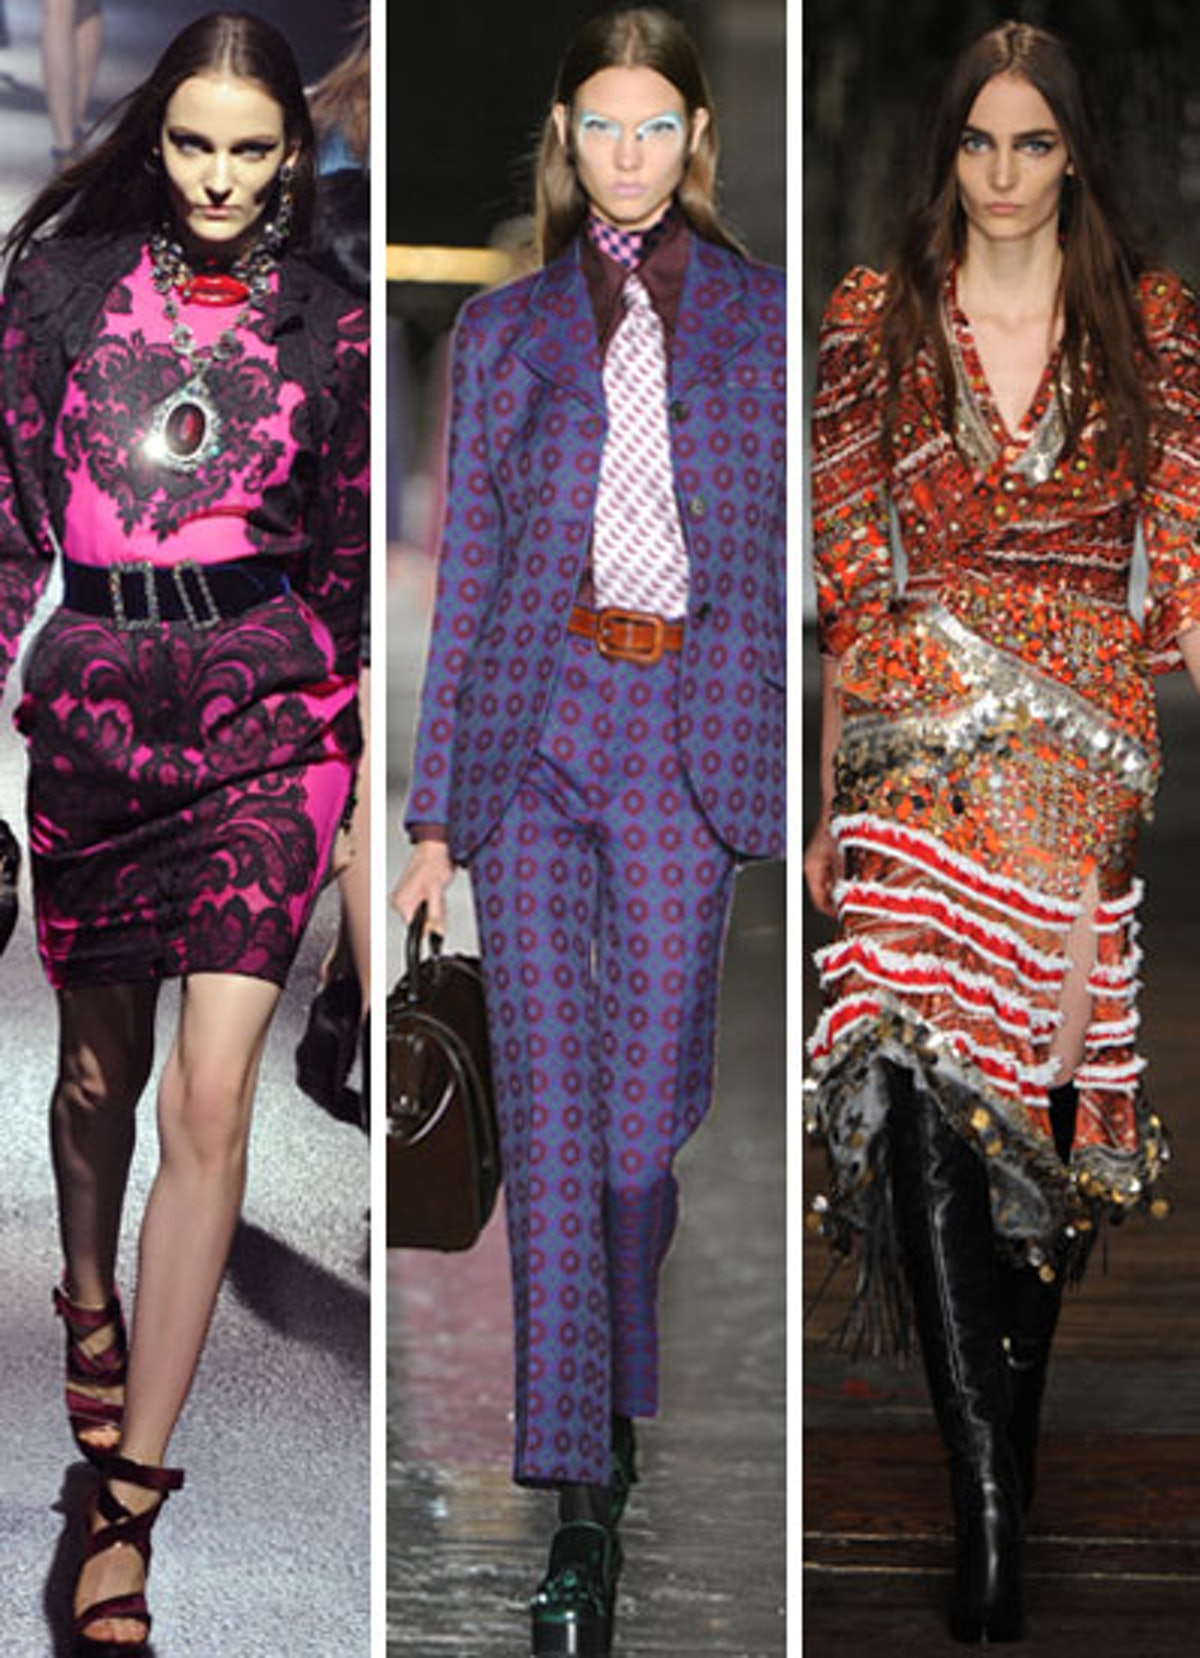 fass-what-to-wear-02-v.jpg